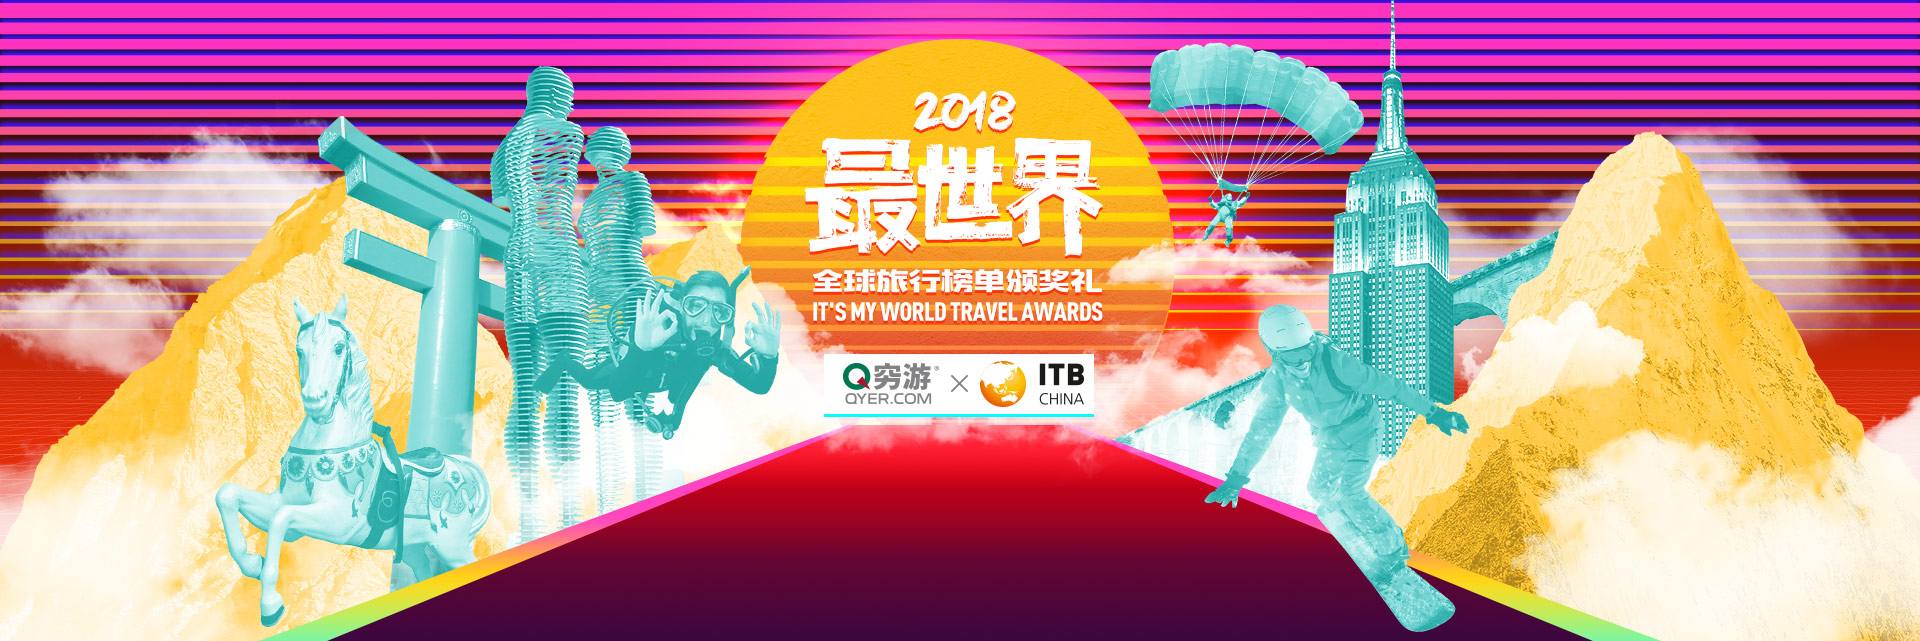 IT'S MY WORLD Travel Award is co-hosted by ITB China and Qyer